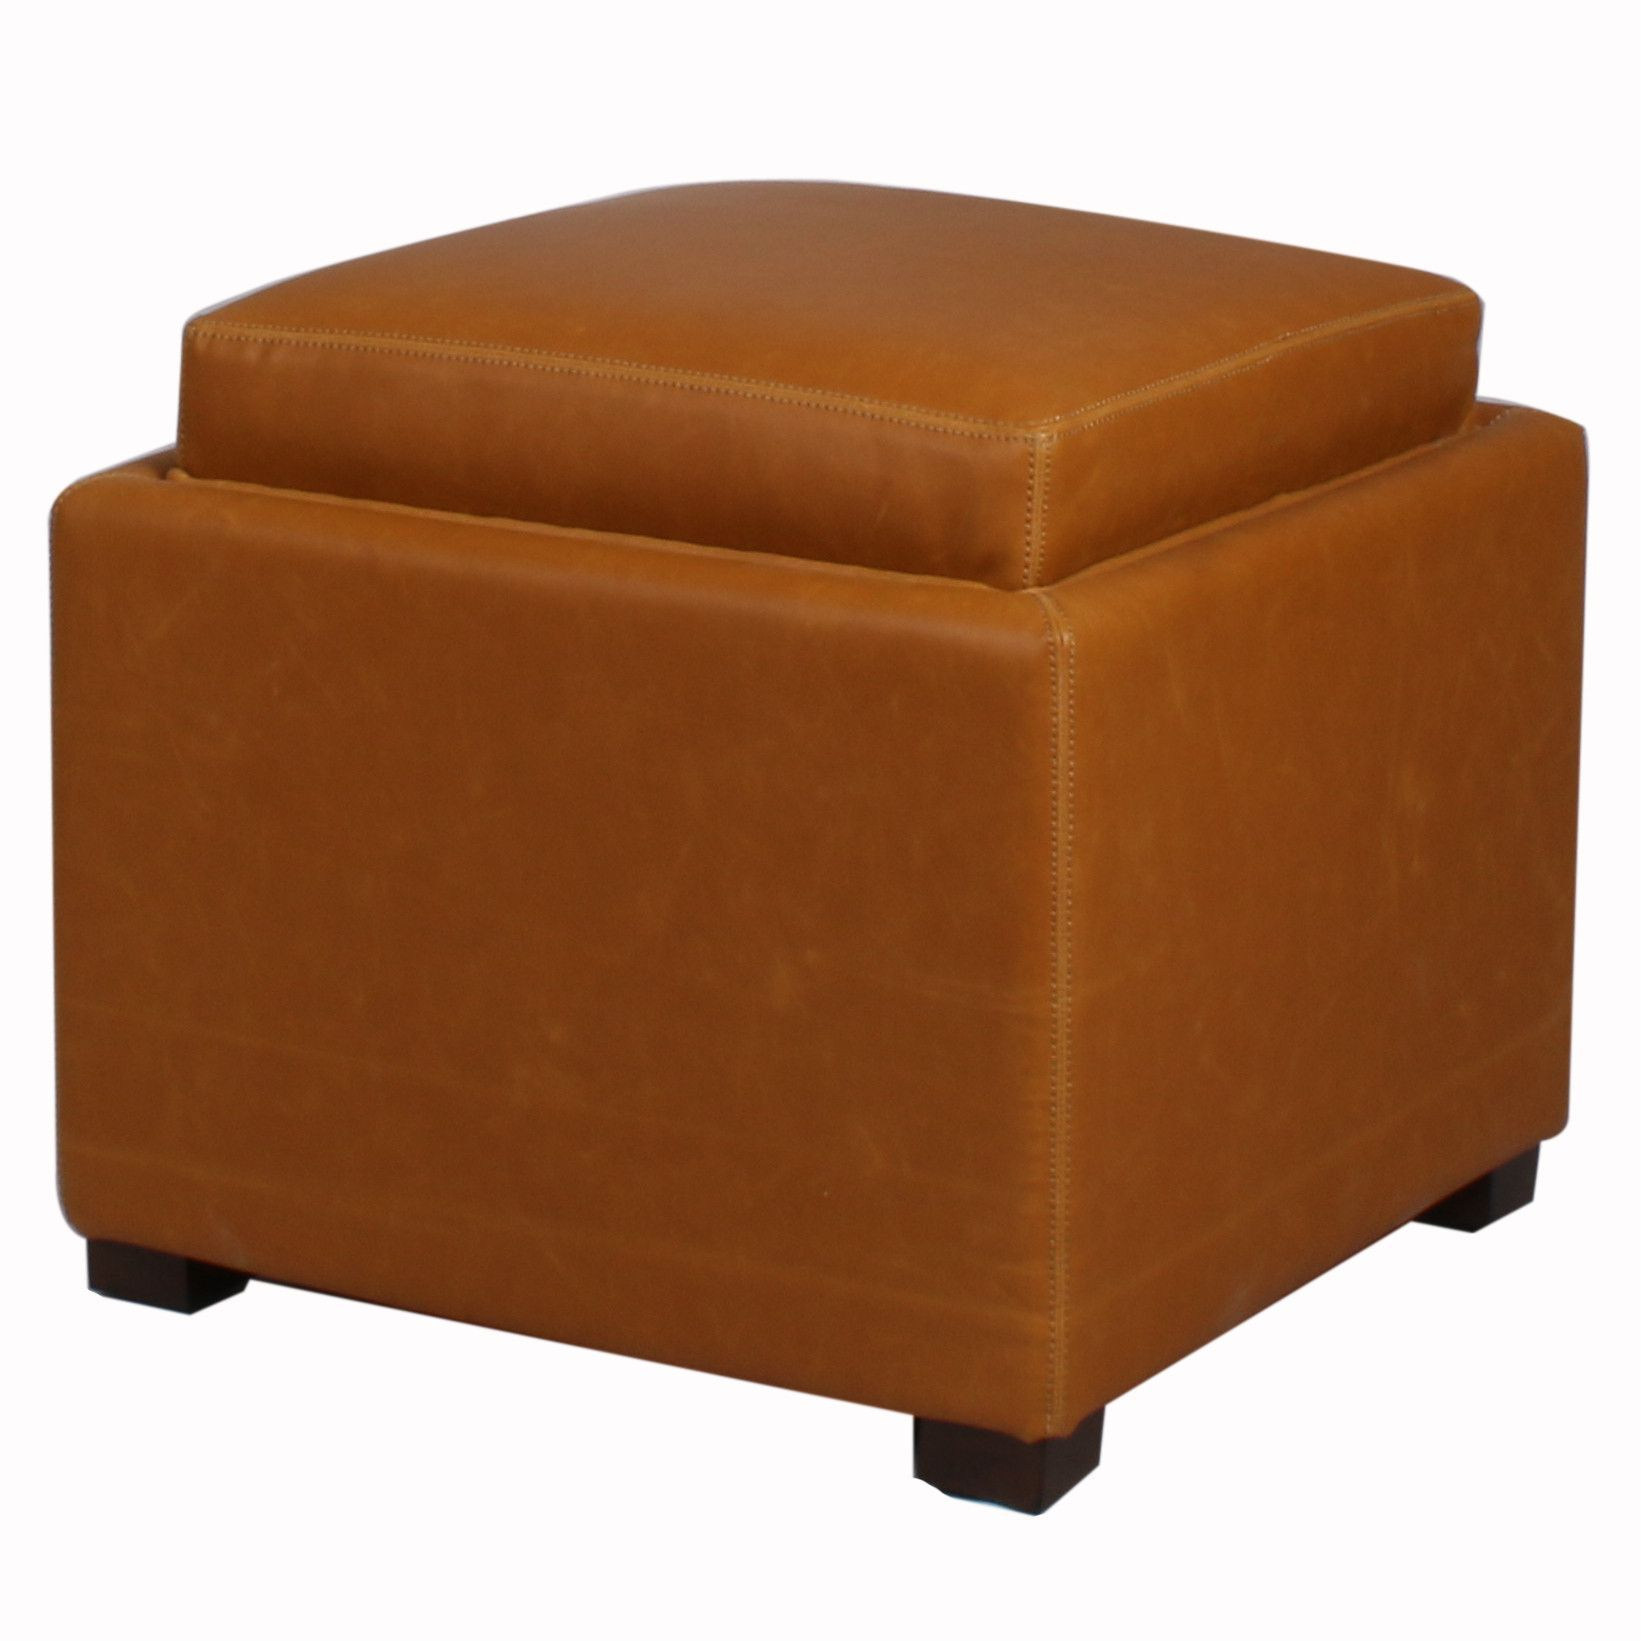 Cameron Square Bonded Leather Storage Ottoman W Tray Vintage Caramel